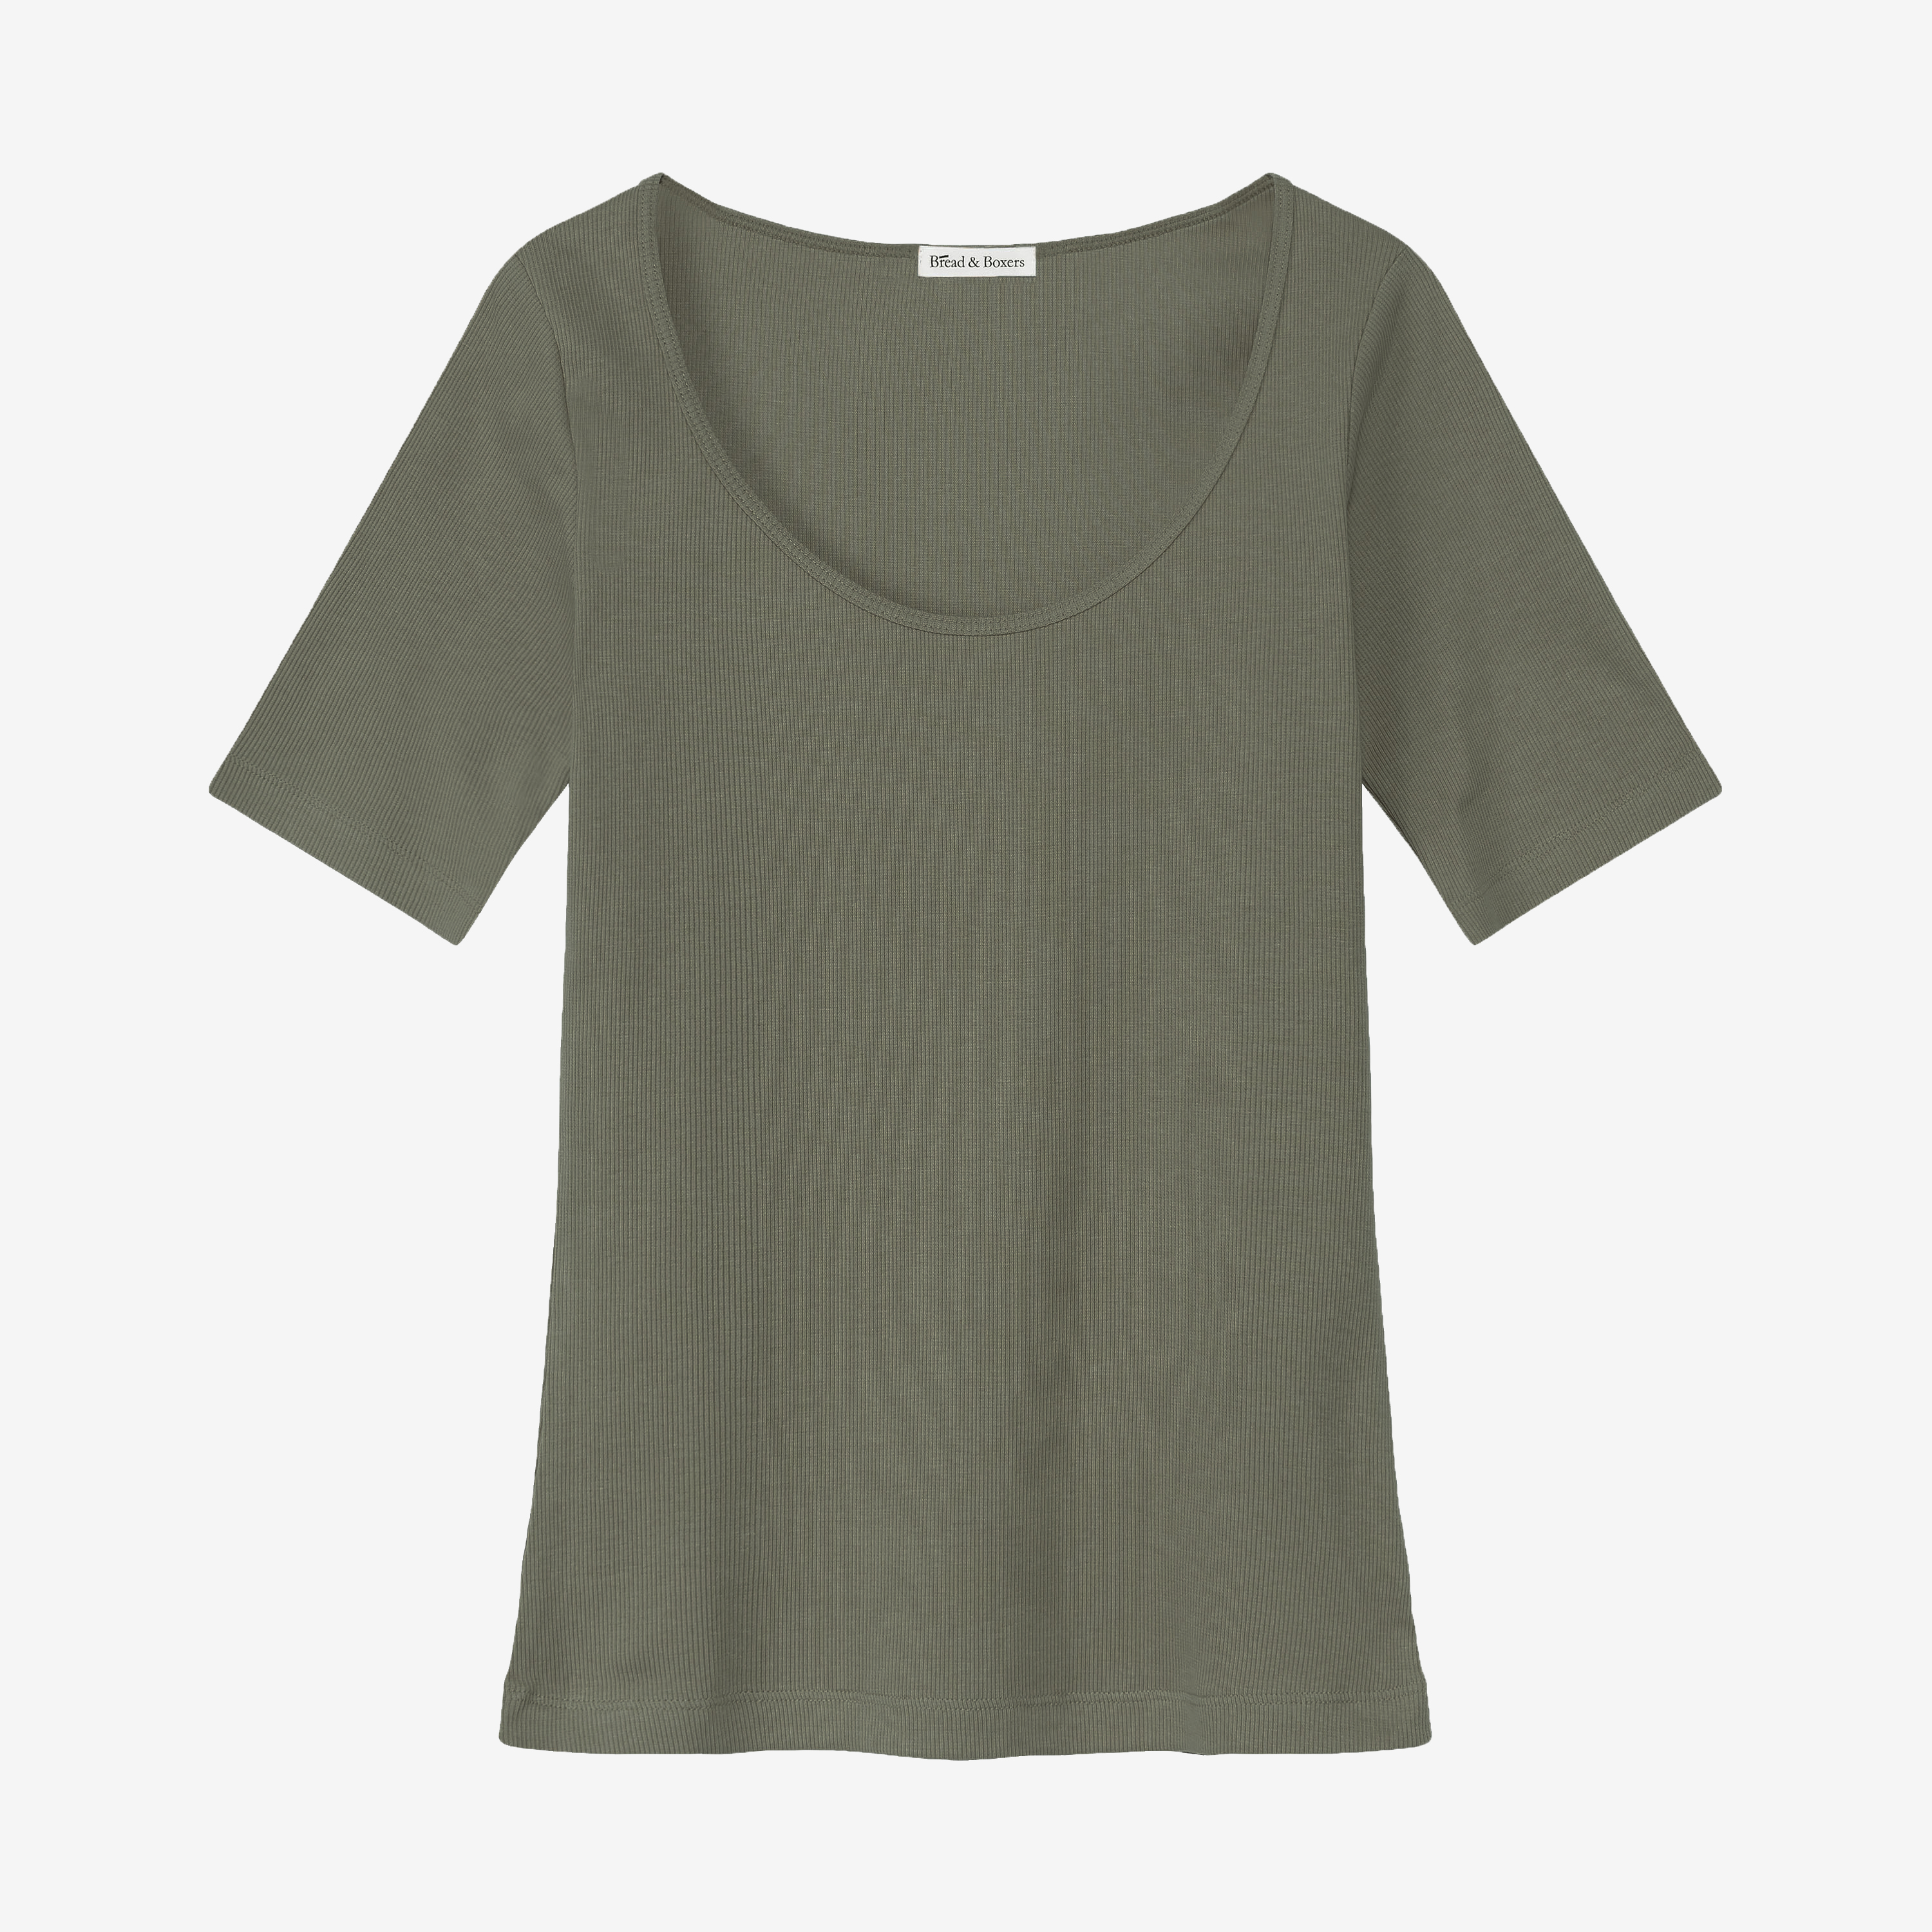 633-40_T-shirt_ribbed_olive-green_CO-A